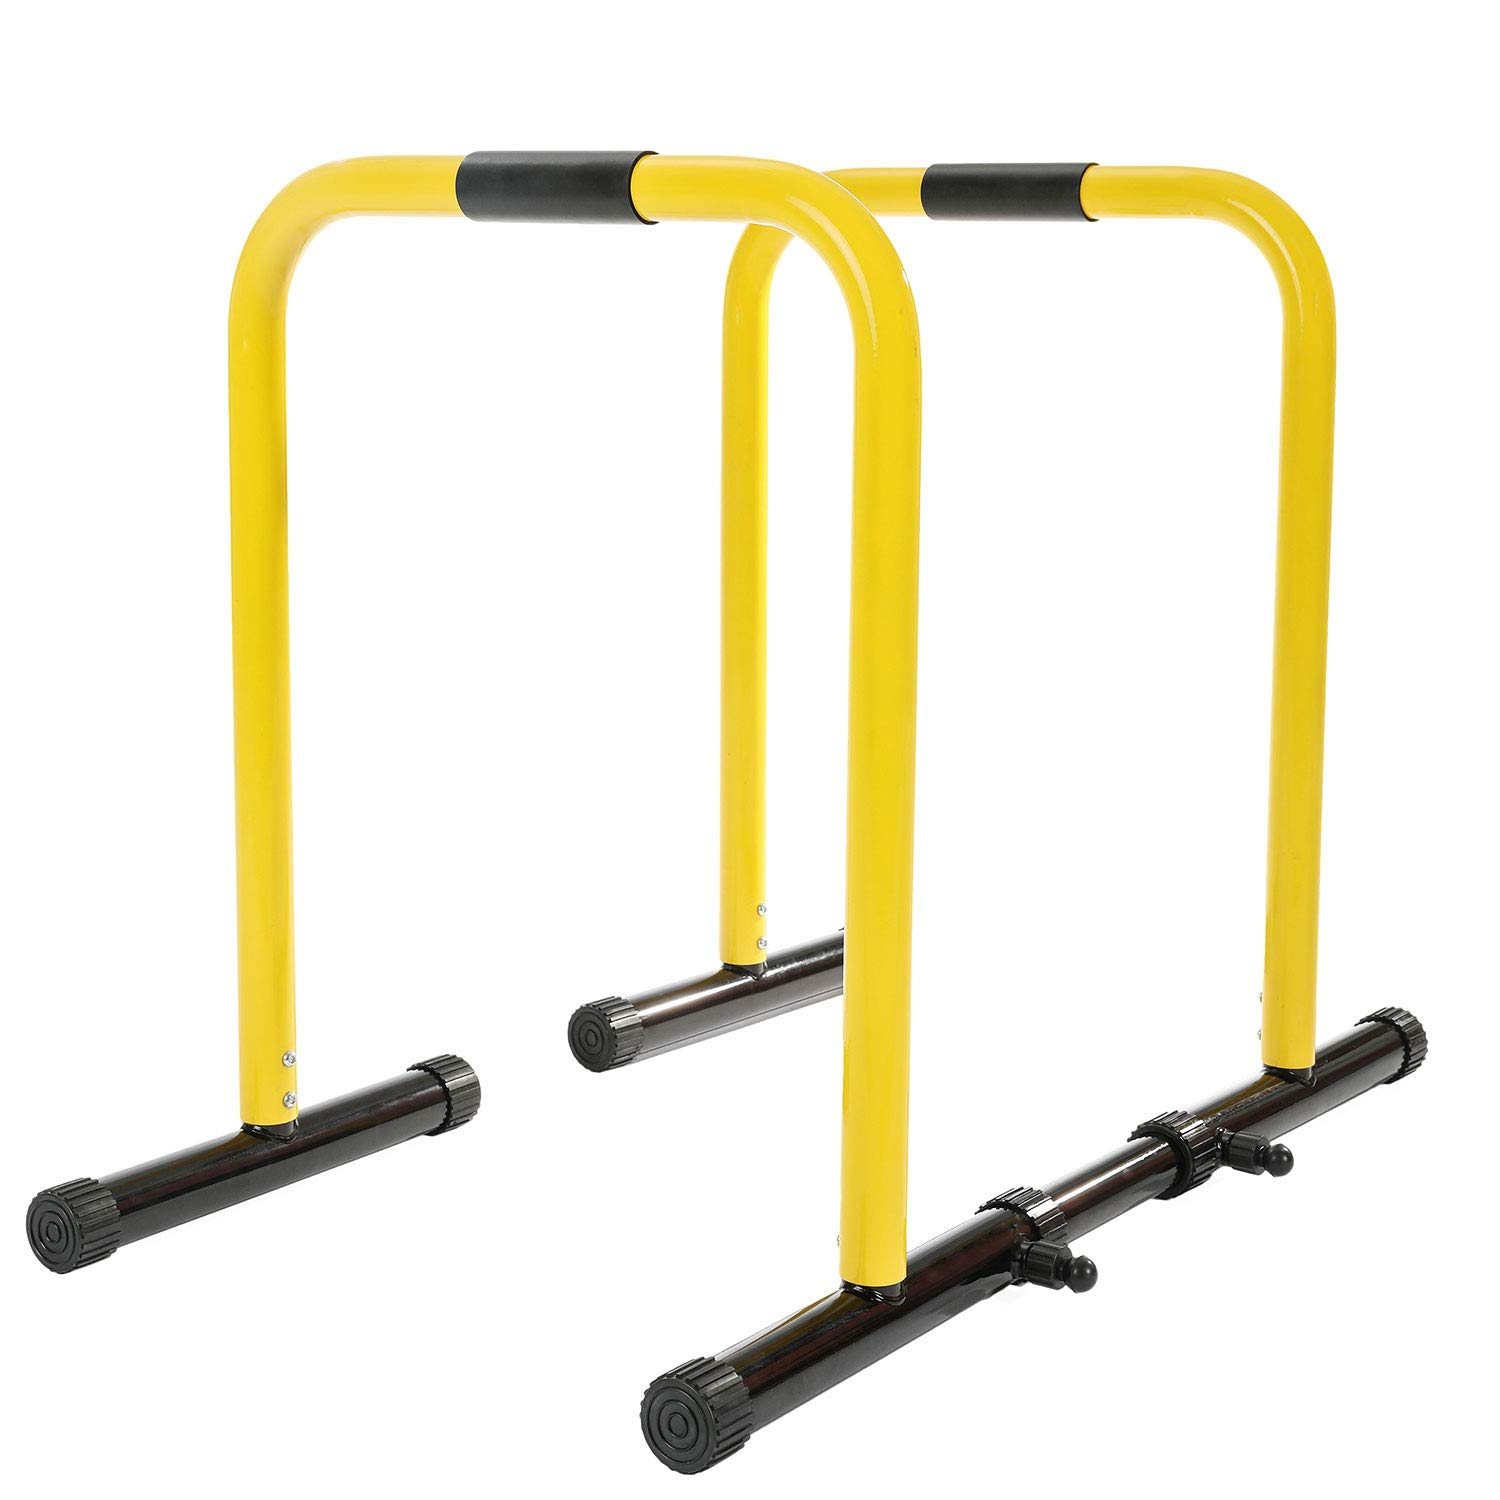 RELIFE REBUILD YOUR LIFE Dip Station Functional Heavy Duty Dip Stands Fitness Workout Dip bar Station Stabilizer Parallette Push Up Stand by RELIFE REBUILD YOUR LIFE (Image #1)